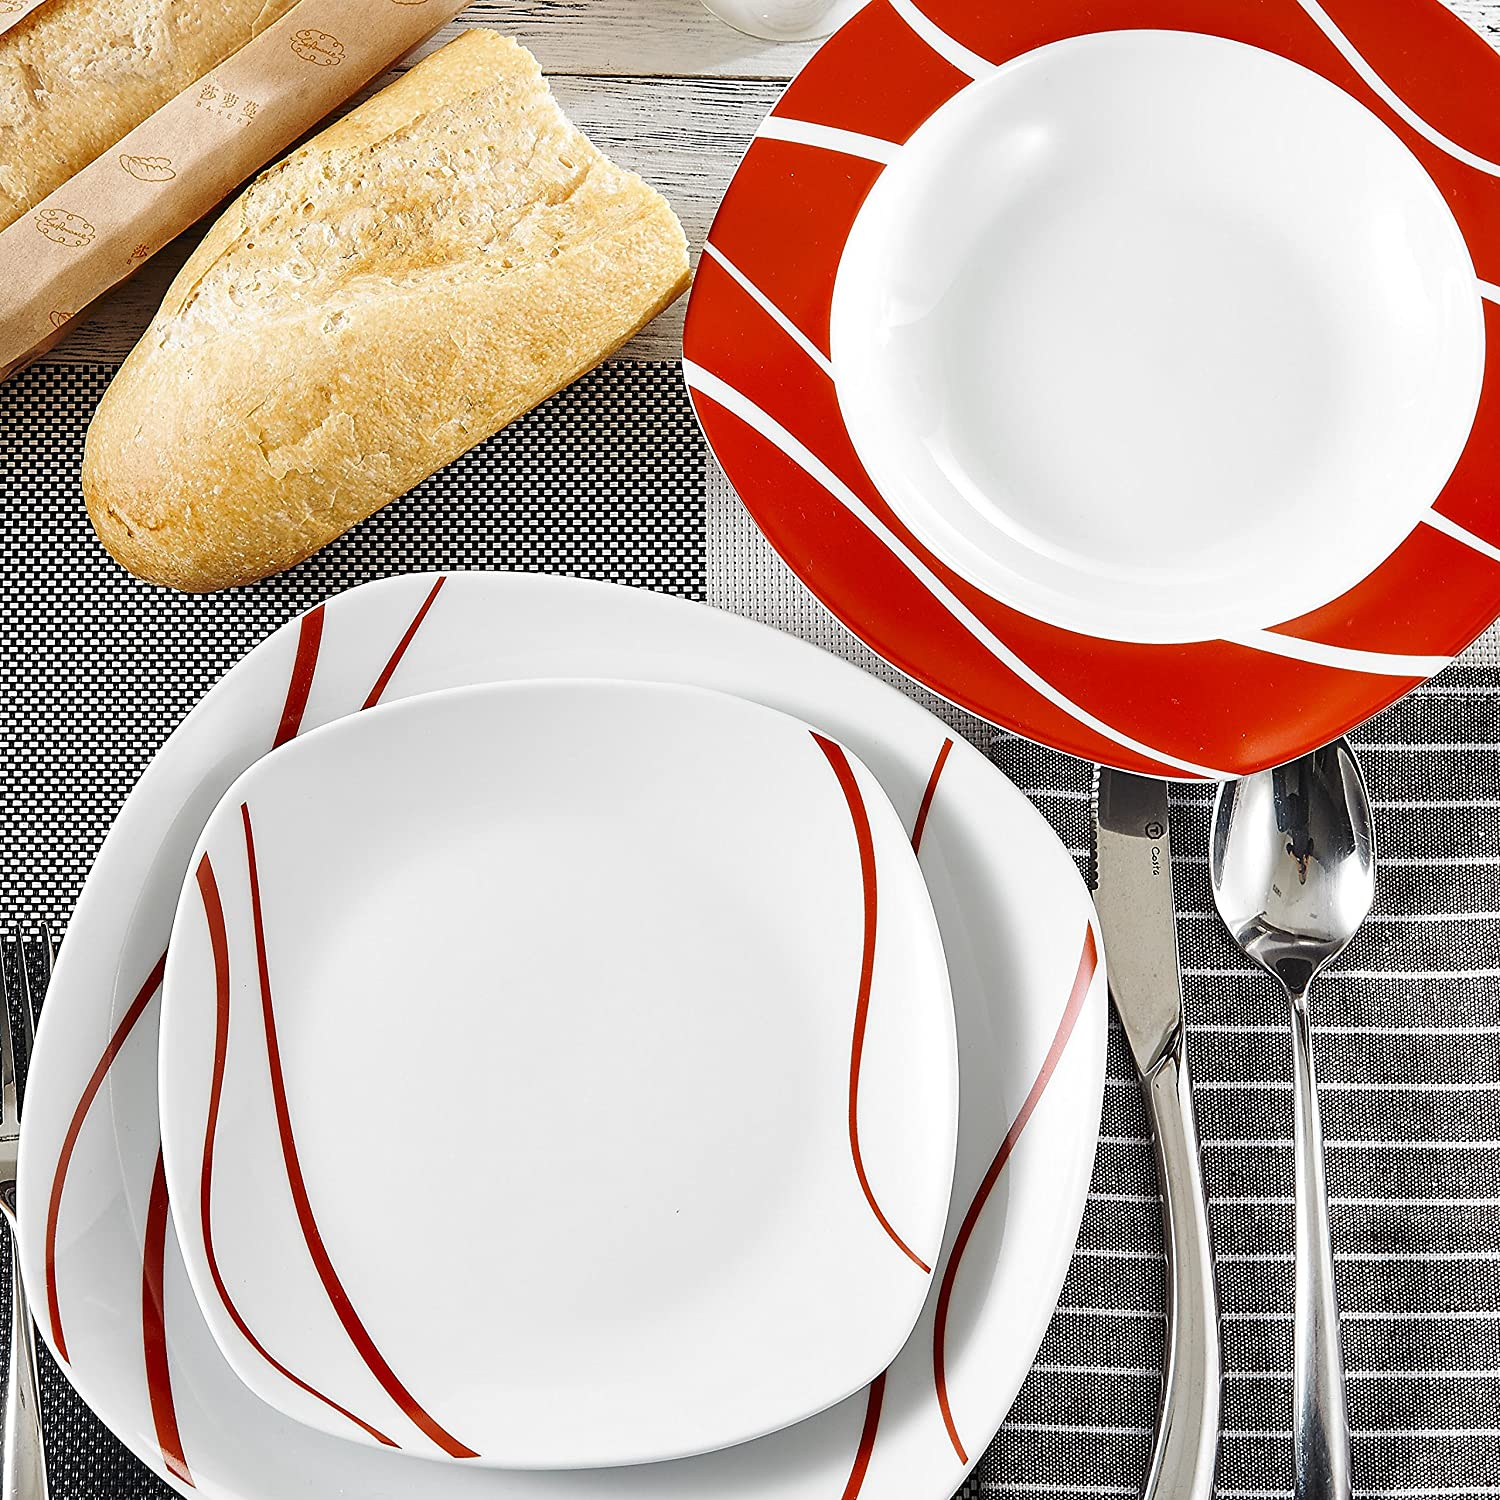 12-Piece Ivory White Porcelain Cream White Dinnerware Combi-Set with Soup Plates and Dinner Plates Service for 6 Series Amparo Malacasa